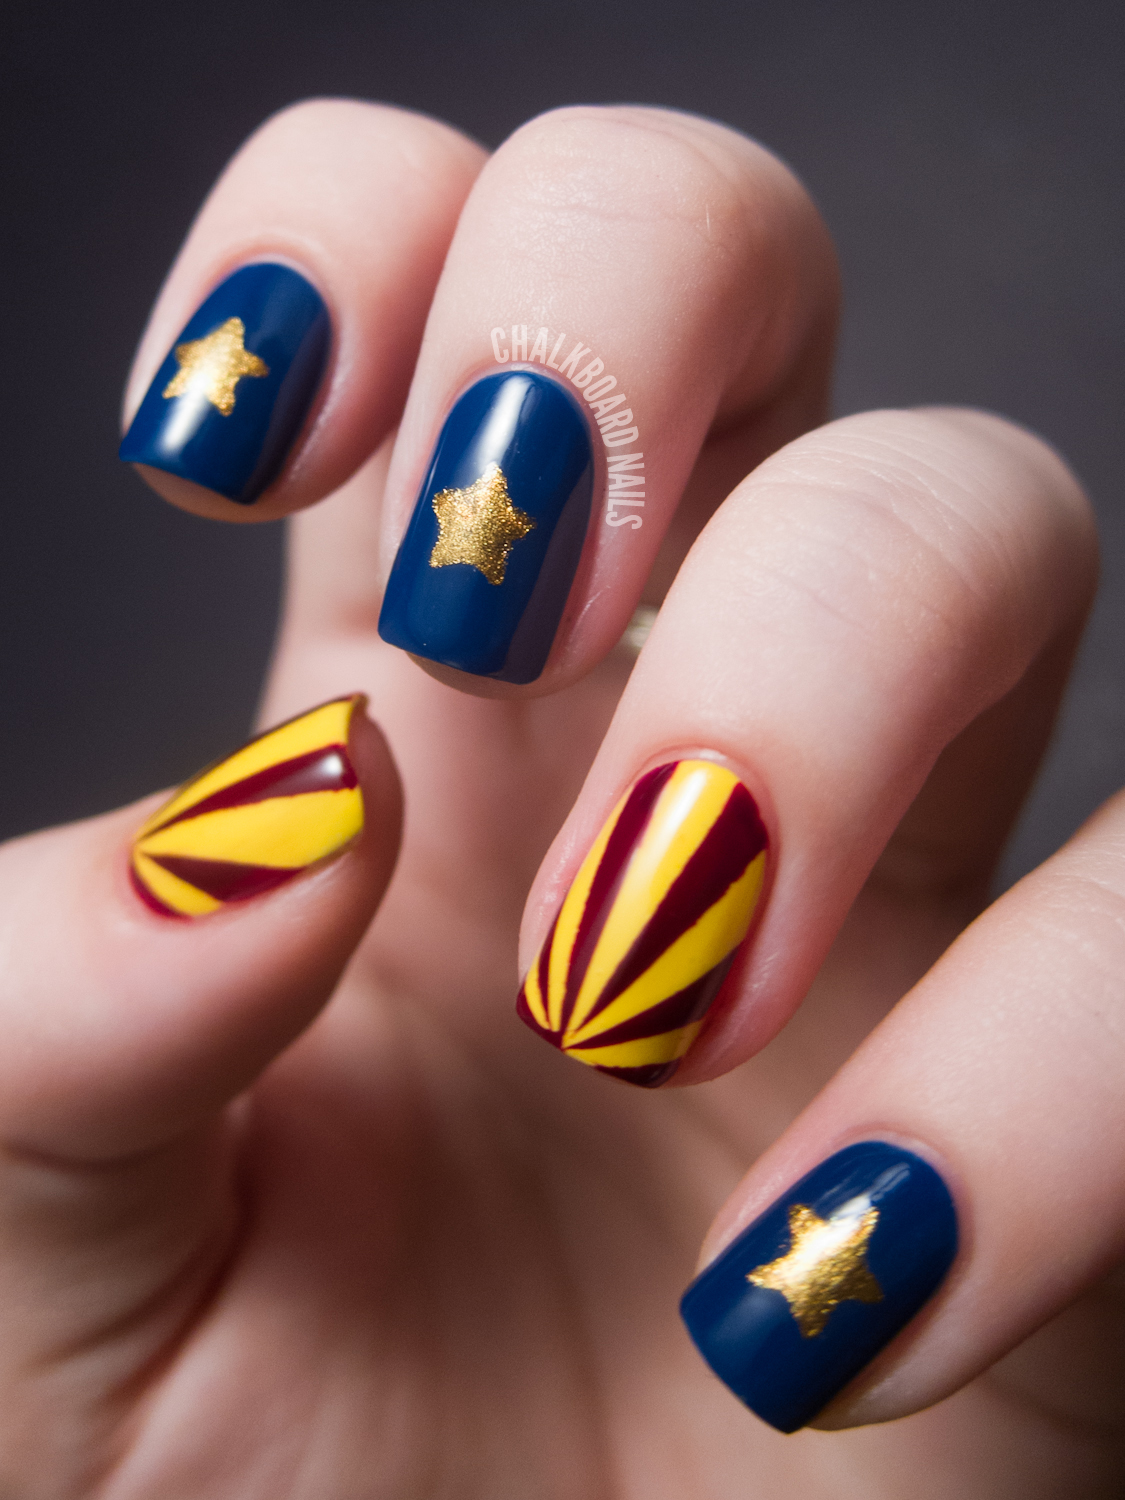 31dc2012 Day 10 Gradient Nails: 31DC2012: Day 28, Inspired By A Flag